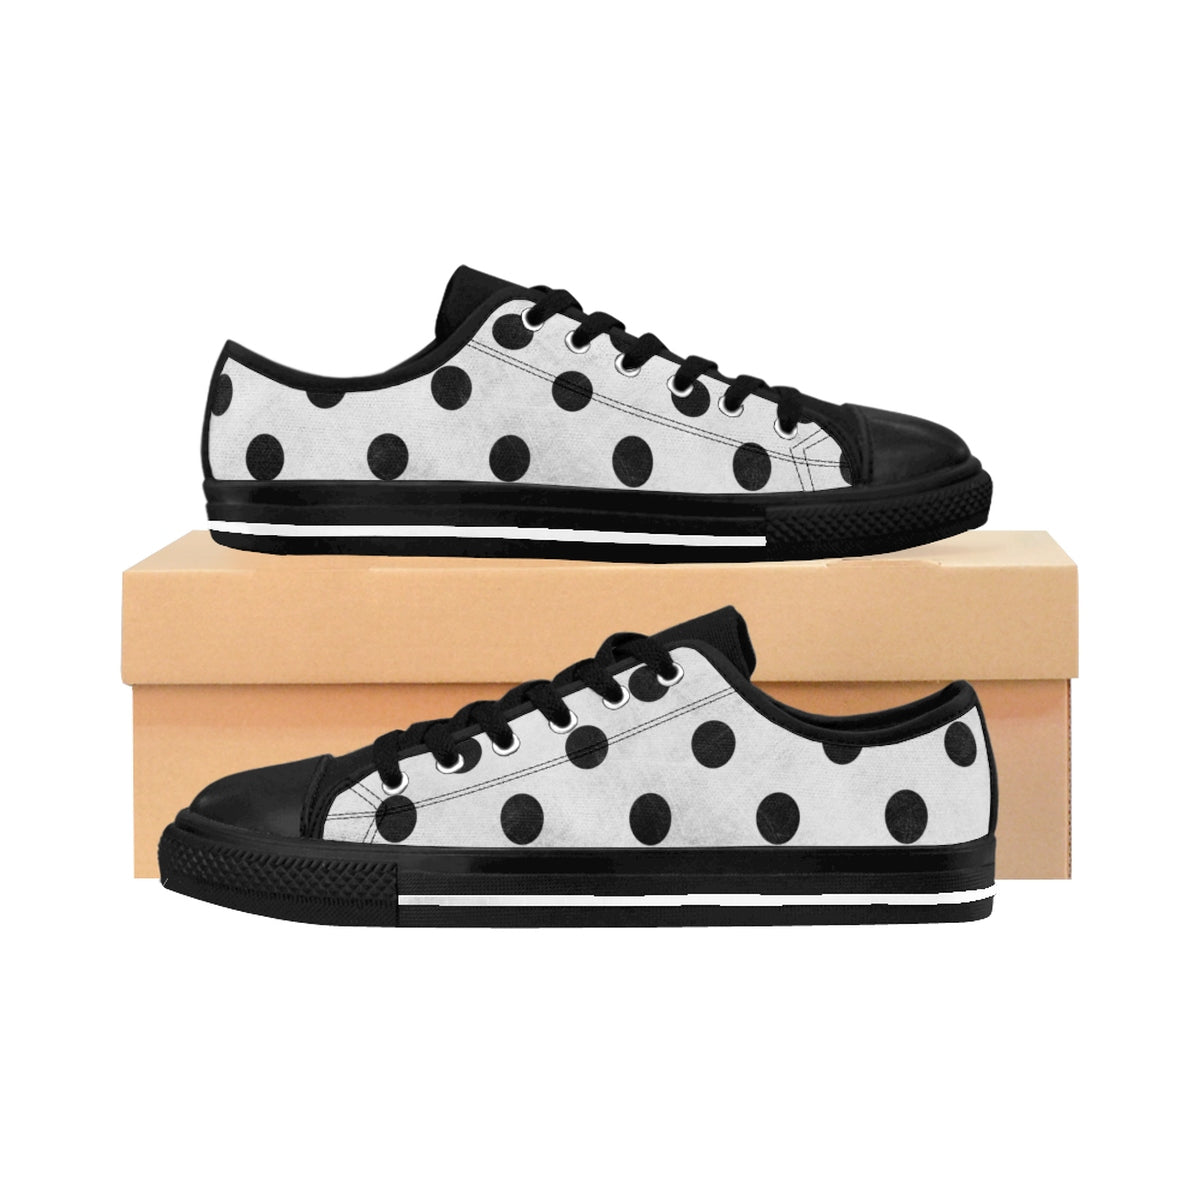 Women's Sneakers - Polka-Dot Fun - Charcoal Dots Grunge